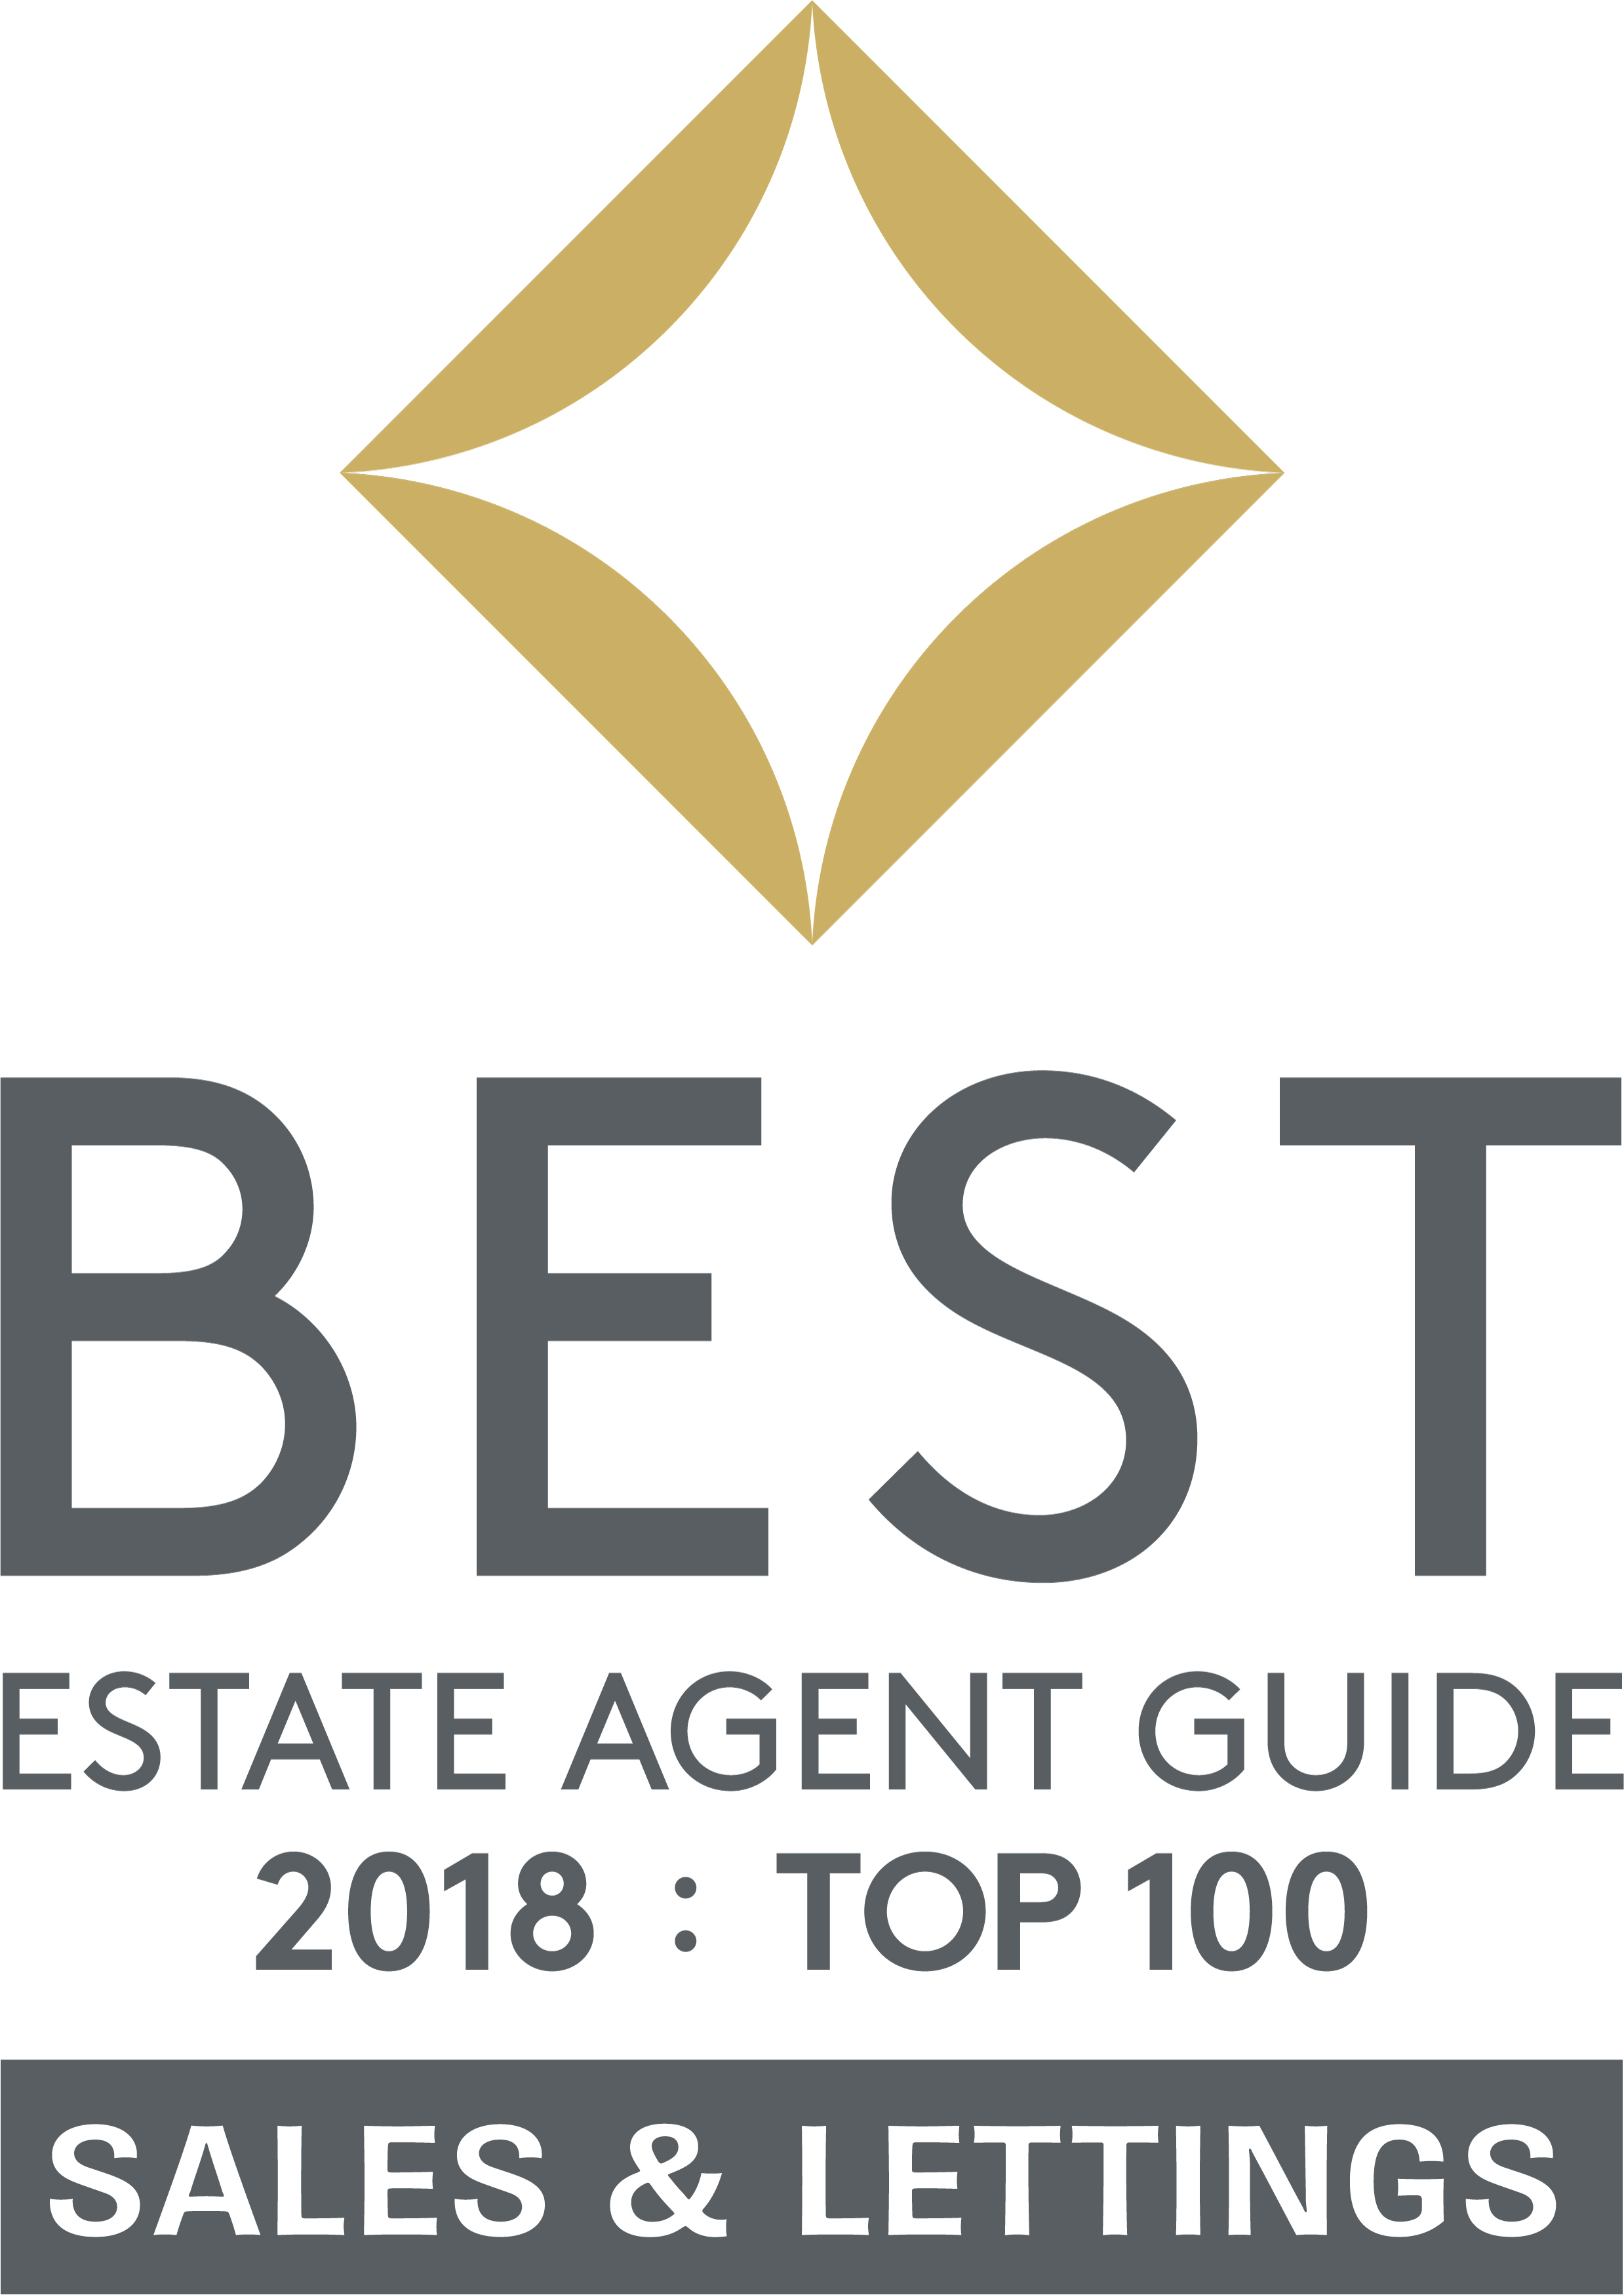 The top 100 Estate Agencies in the UK